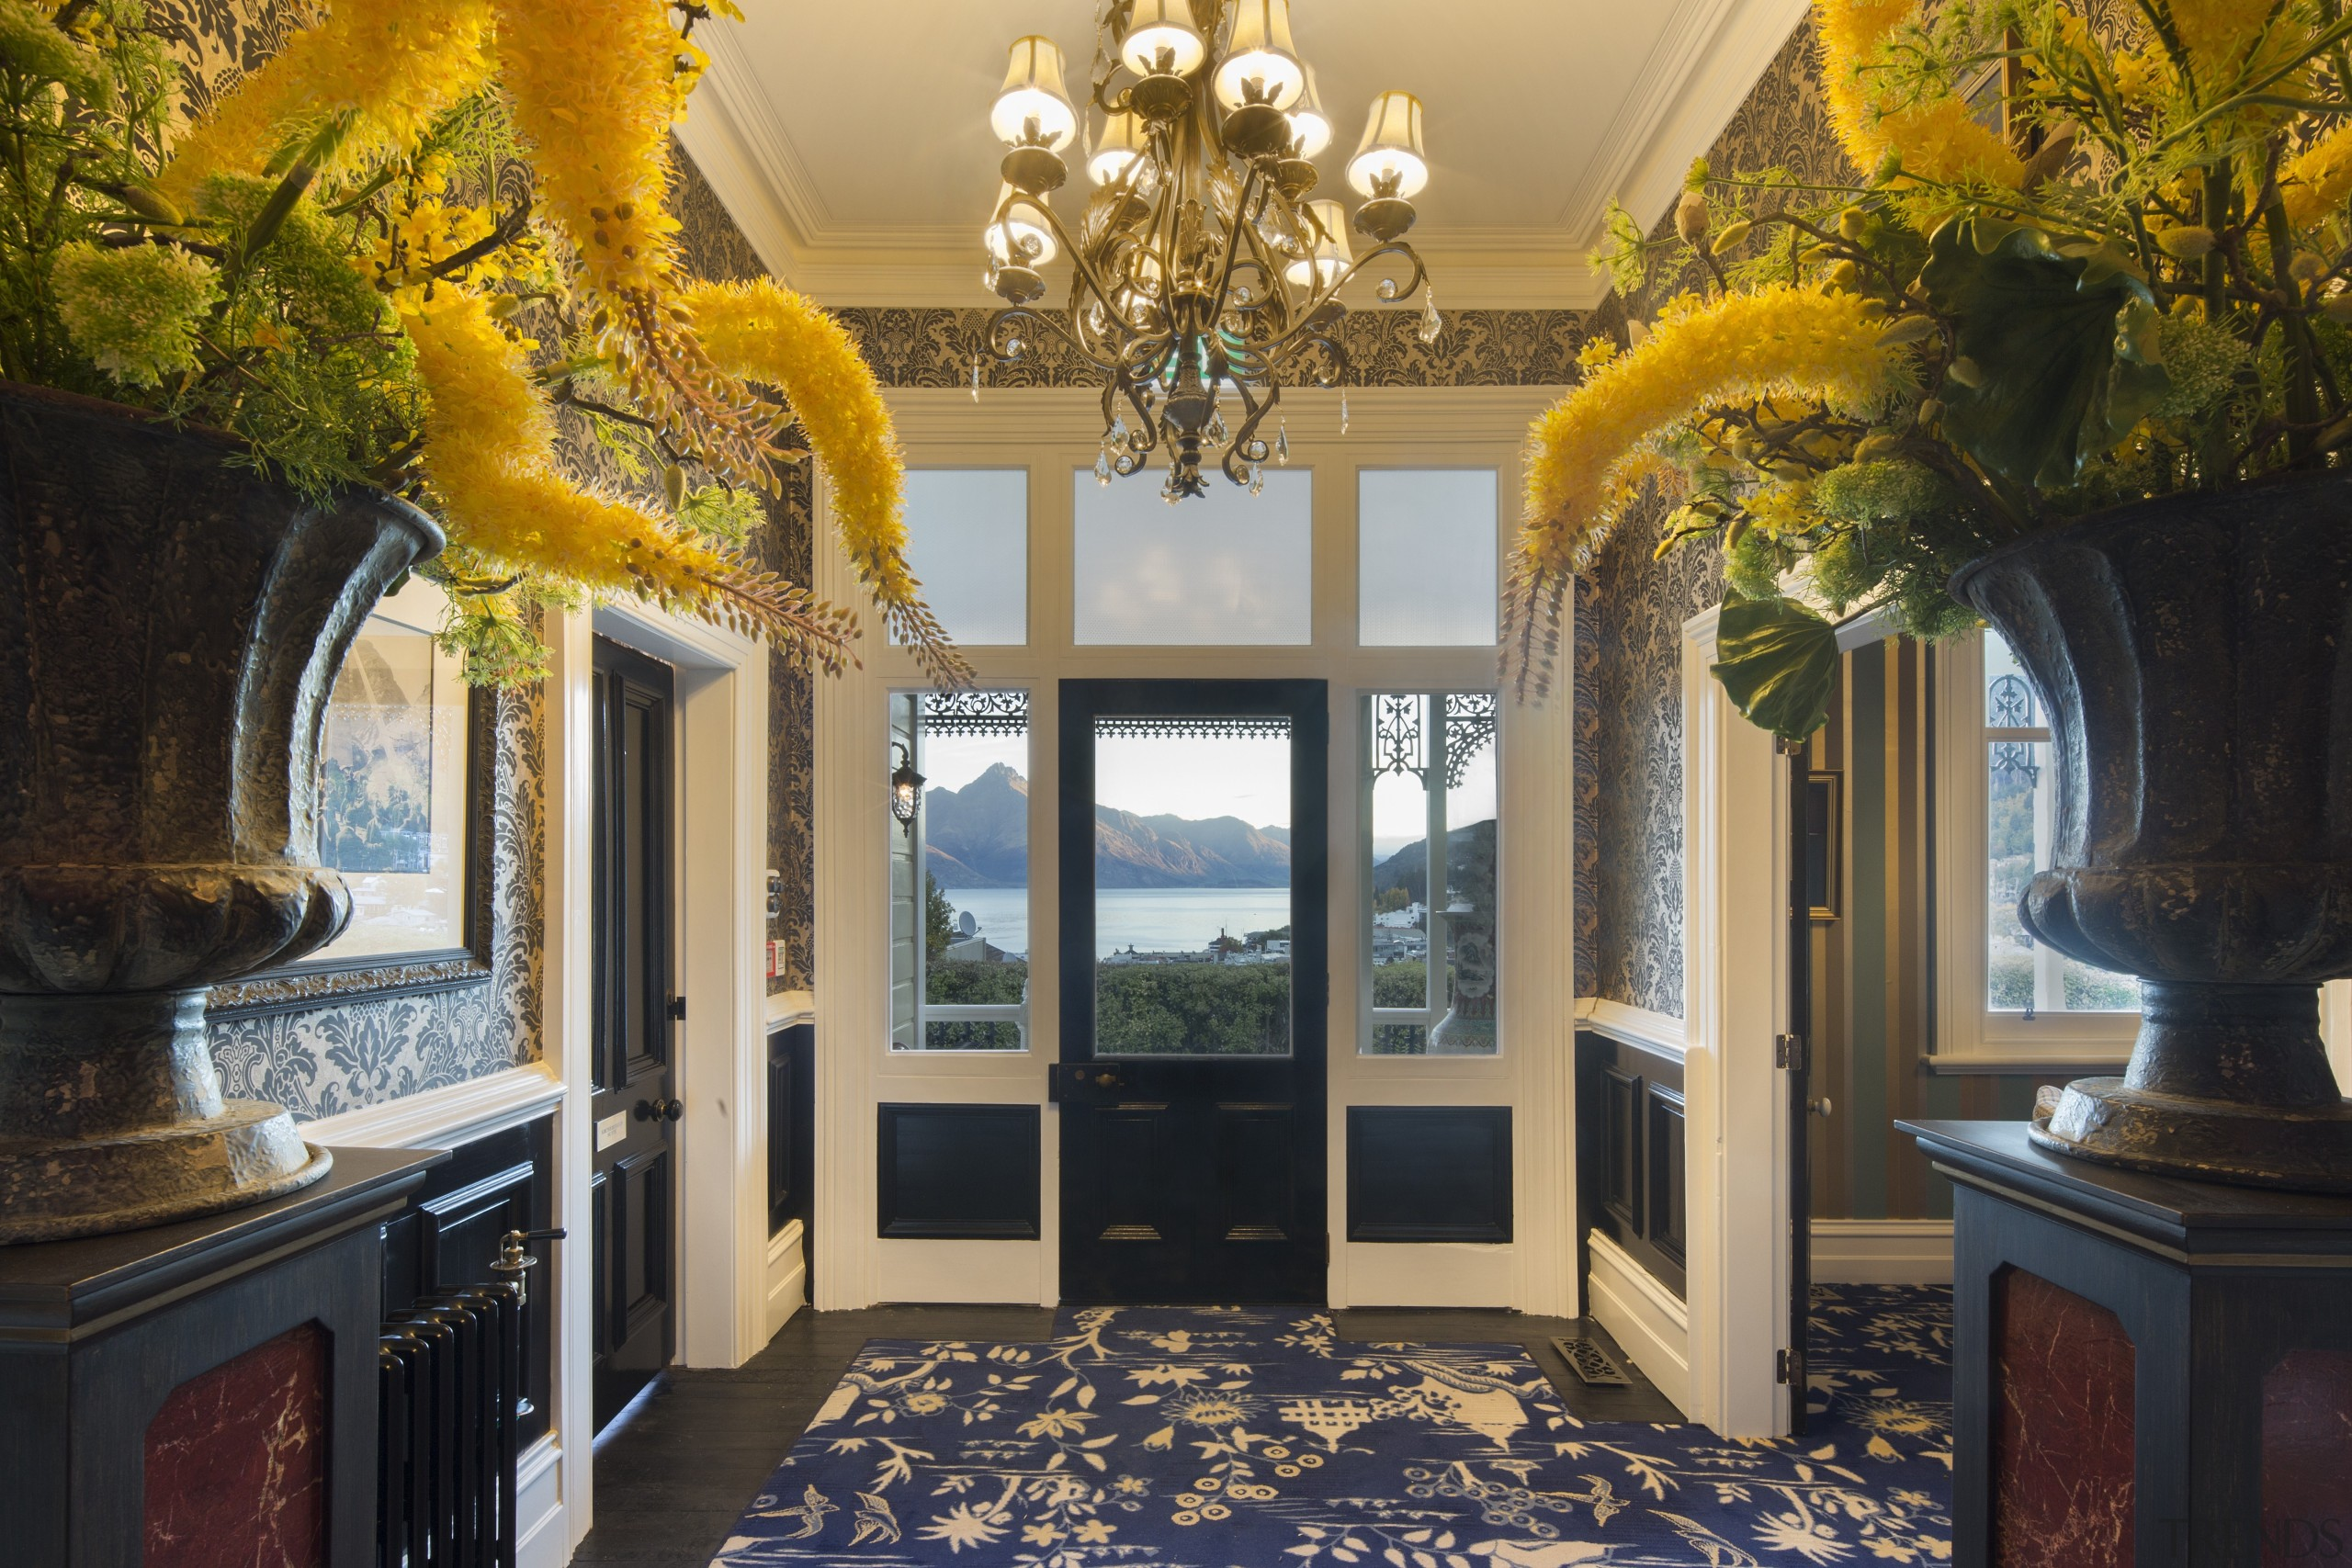 Hulbert House, Queenstown, New Zealand - architecture | architecture, building, ceiling, estate, floor, furniture, home, house, interior design, molding, property, real estate, room, tree, yellow, black, brown